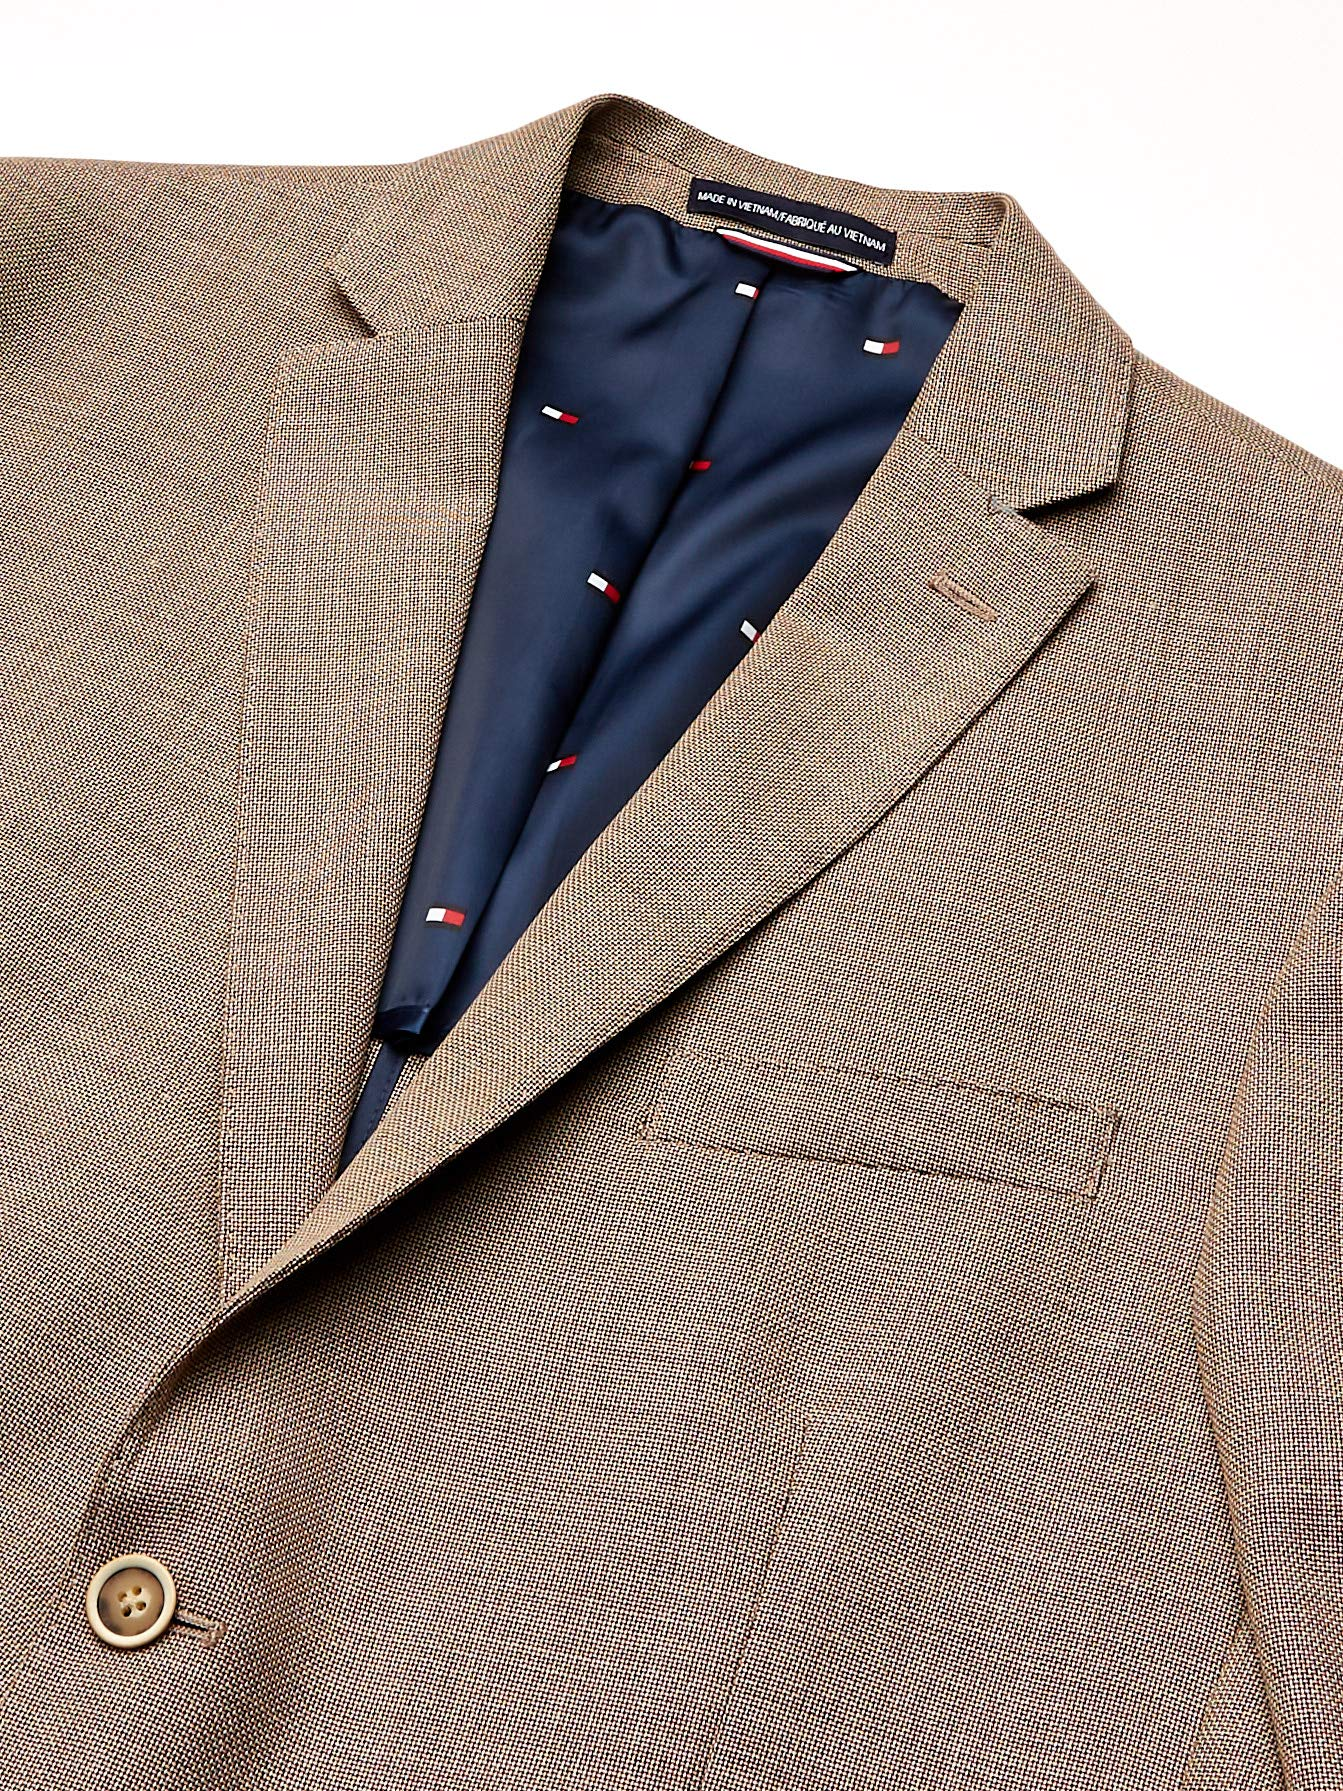 Tommy Hilfiger Men's Big and Tall Modern Blazer, Rustic Brown, 54R by Tommy Hilfiger (Image #3)